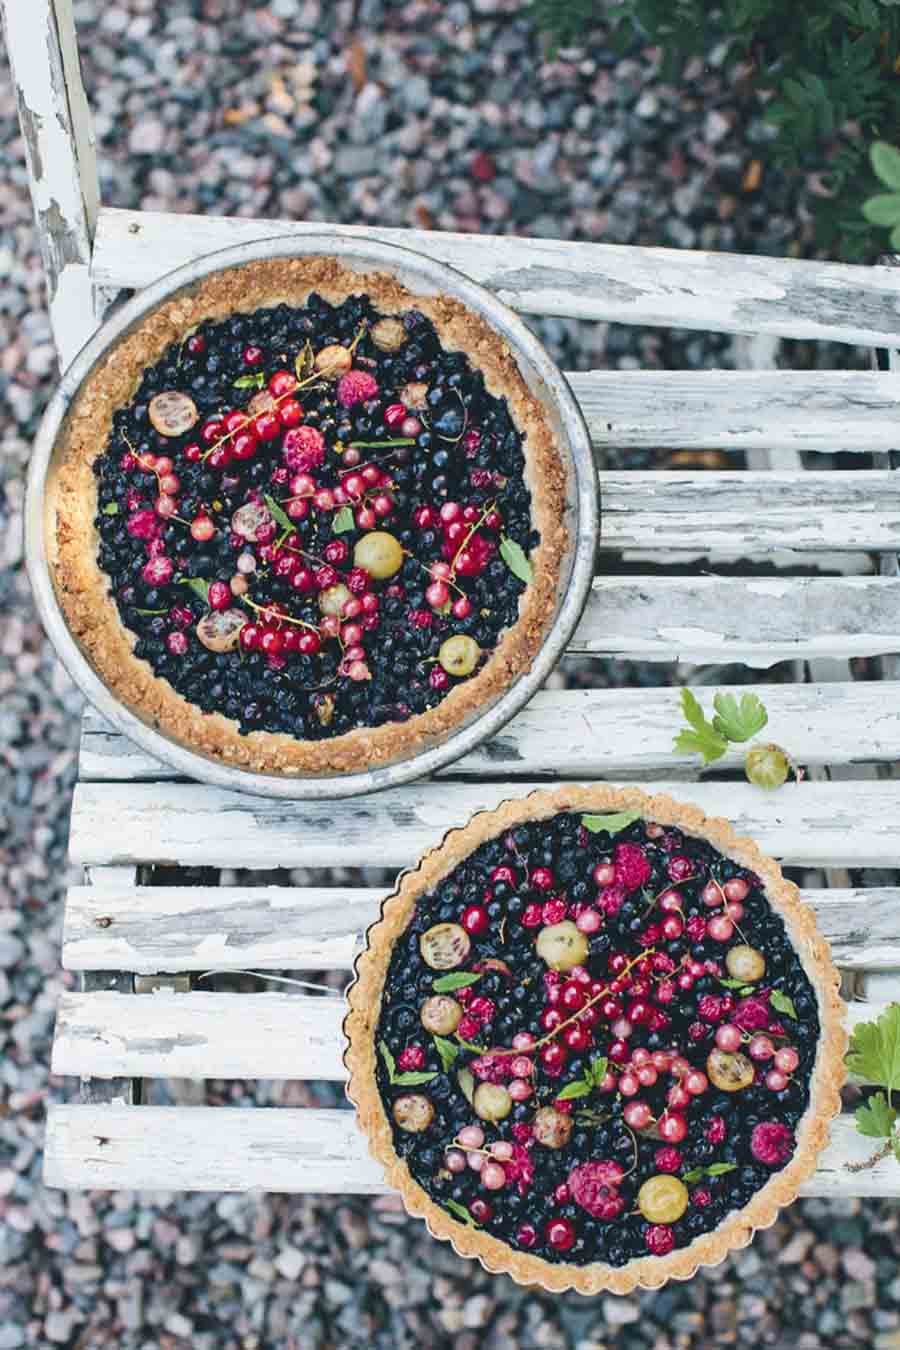 Overhead view of two mixed berry tarts sitting on a rustic wooden chair in a gravel walkway.